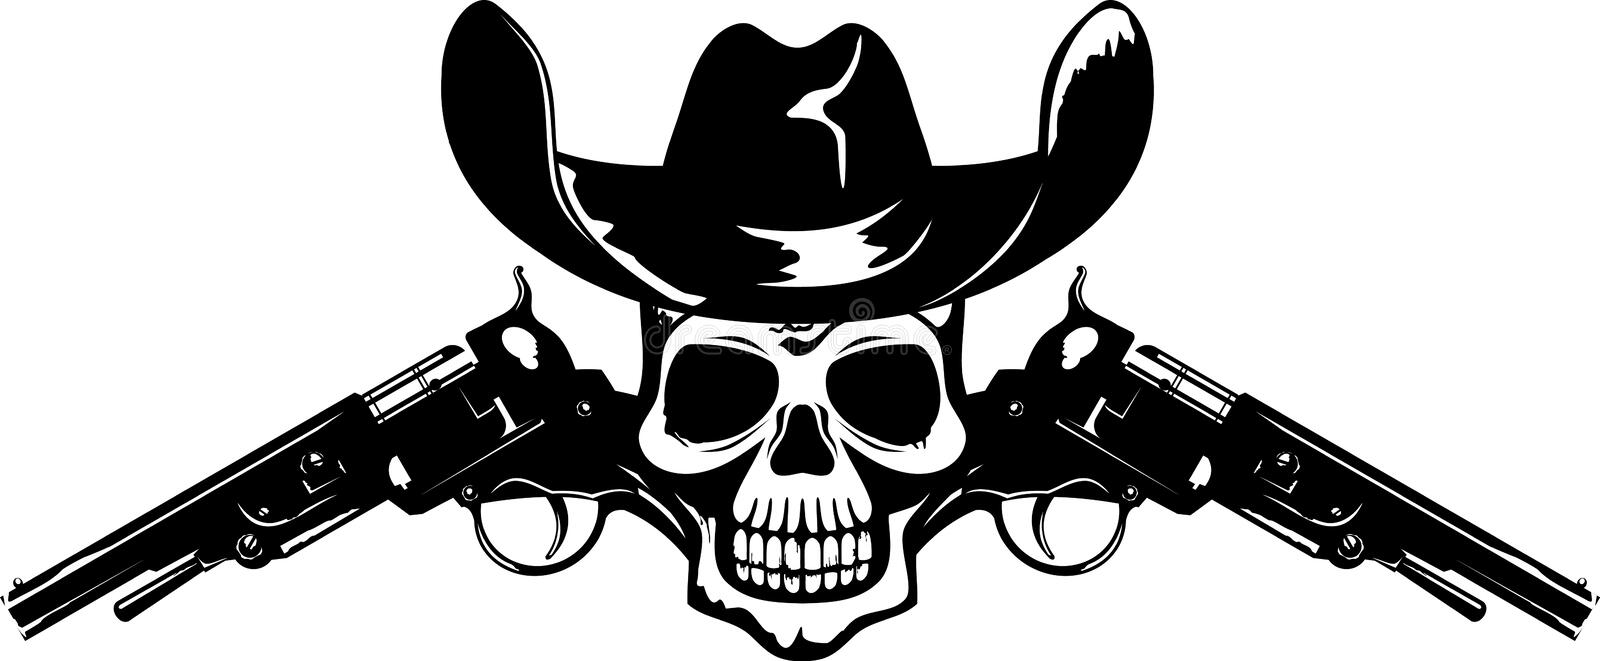 Symbol with skull royalty free stock images